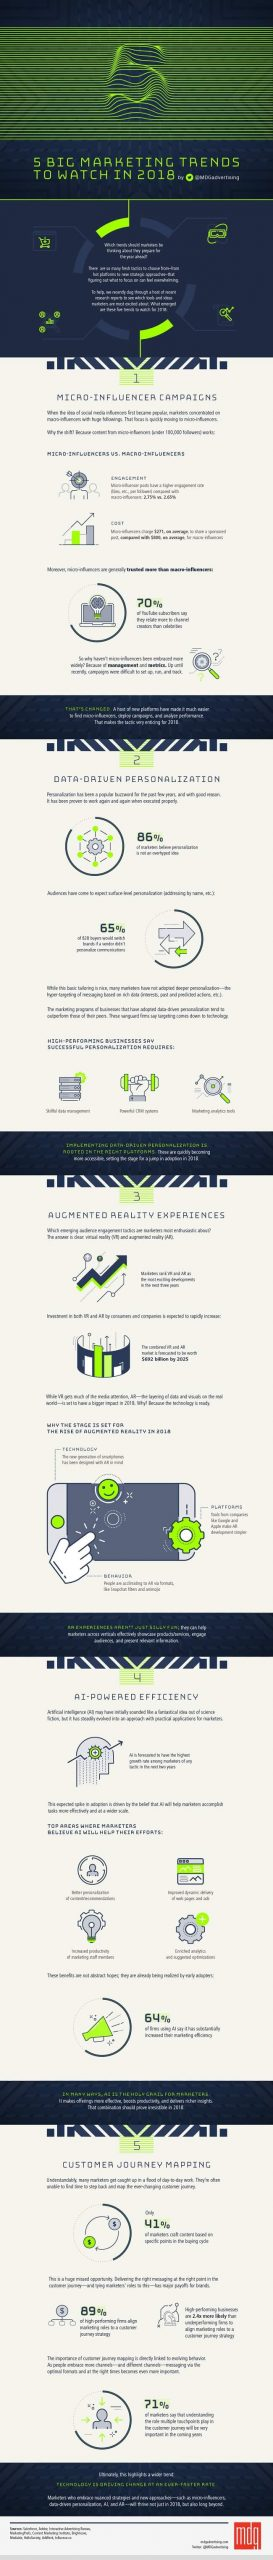 big marketing trends to watch infographic compressed